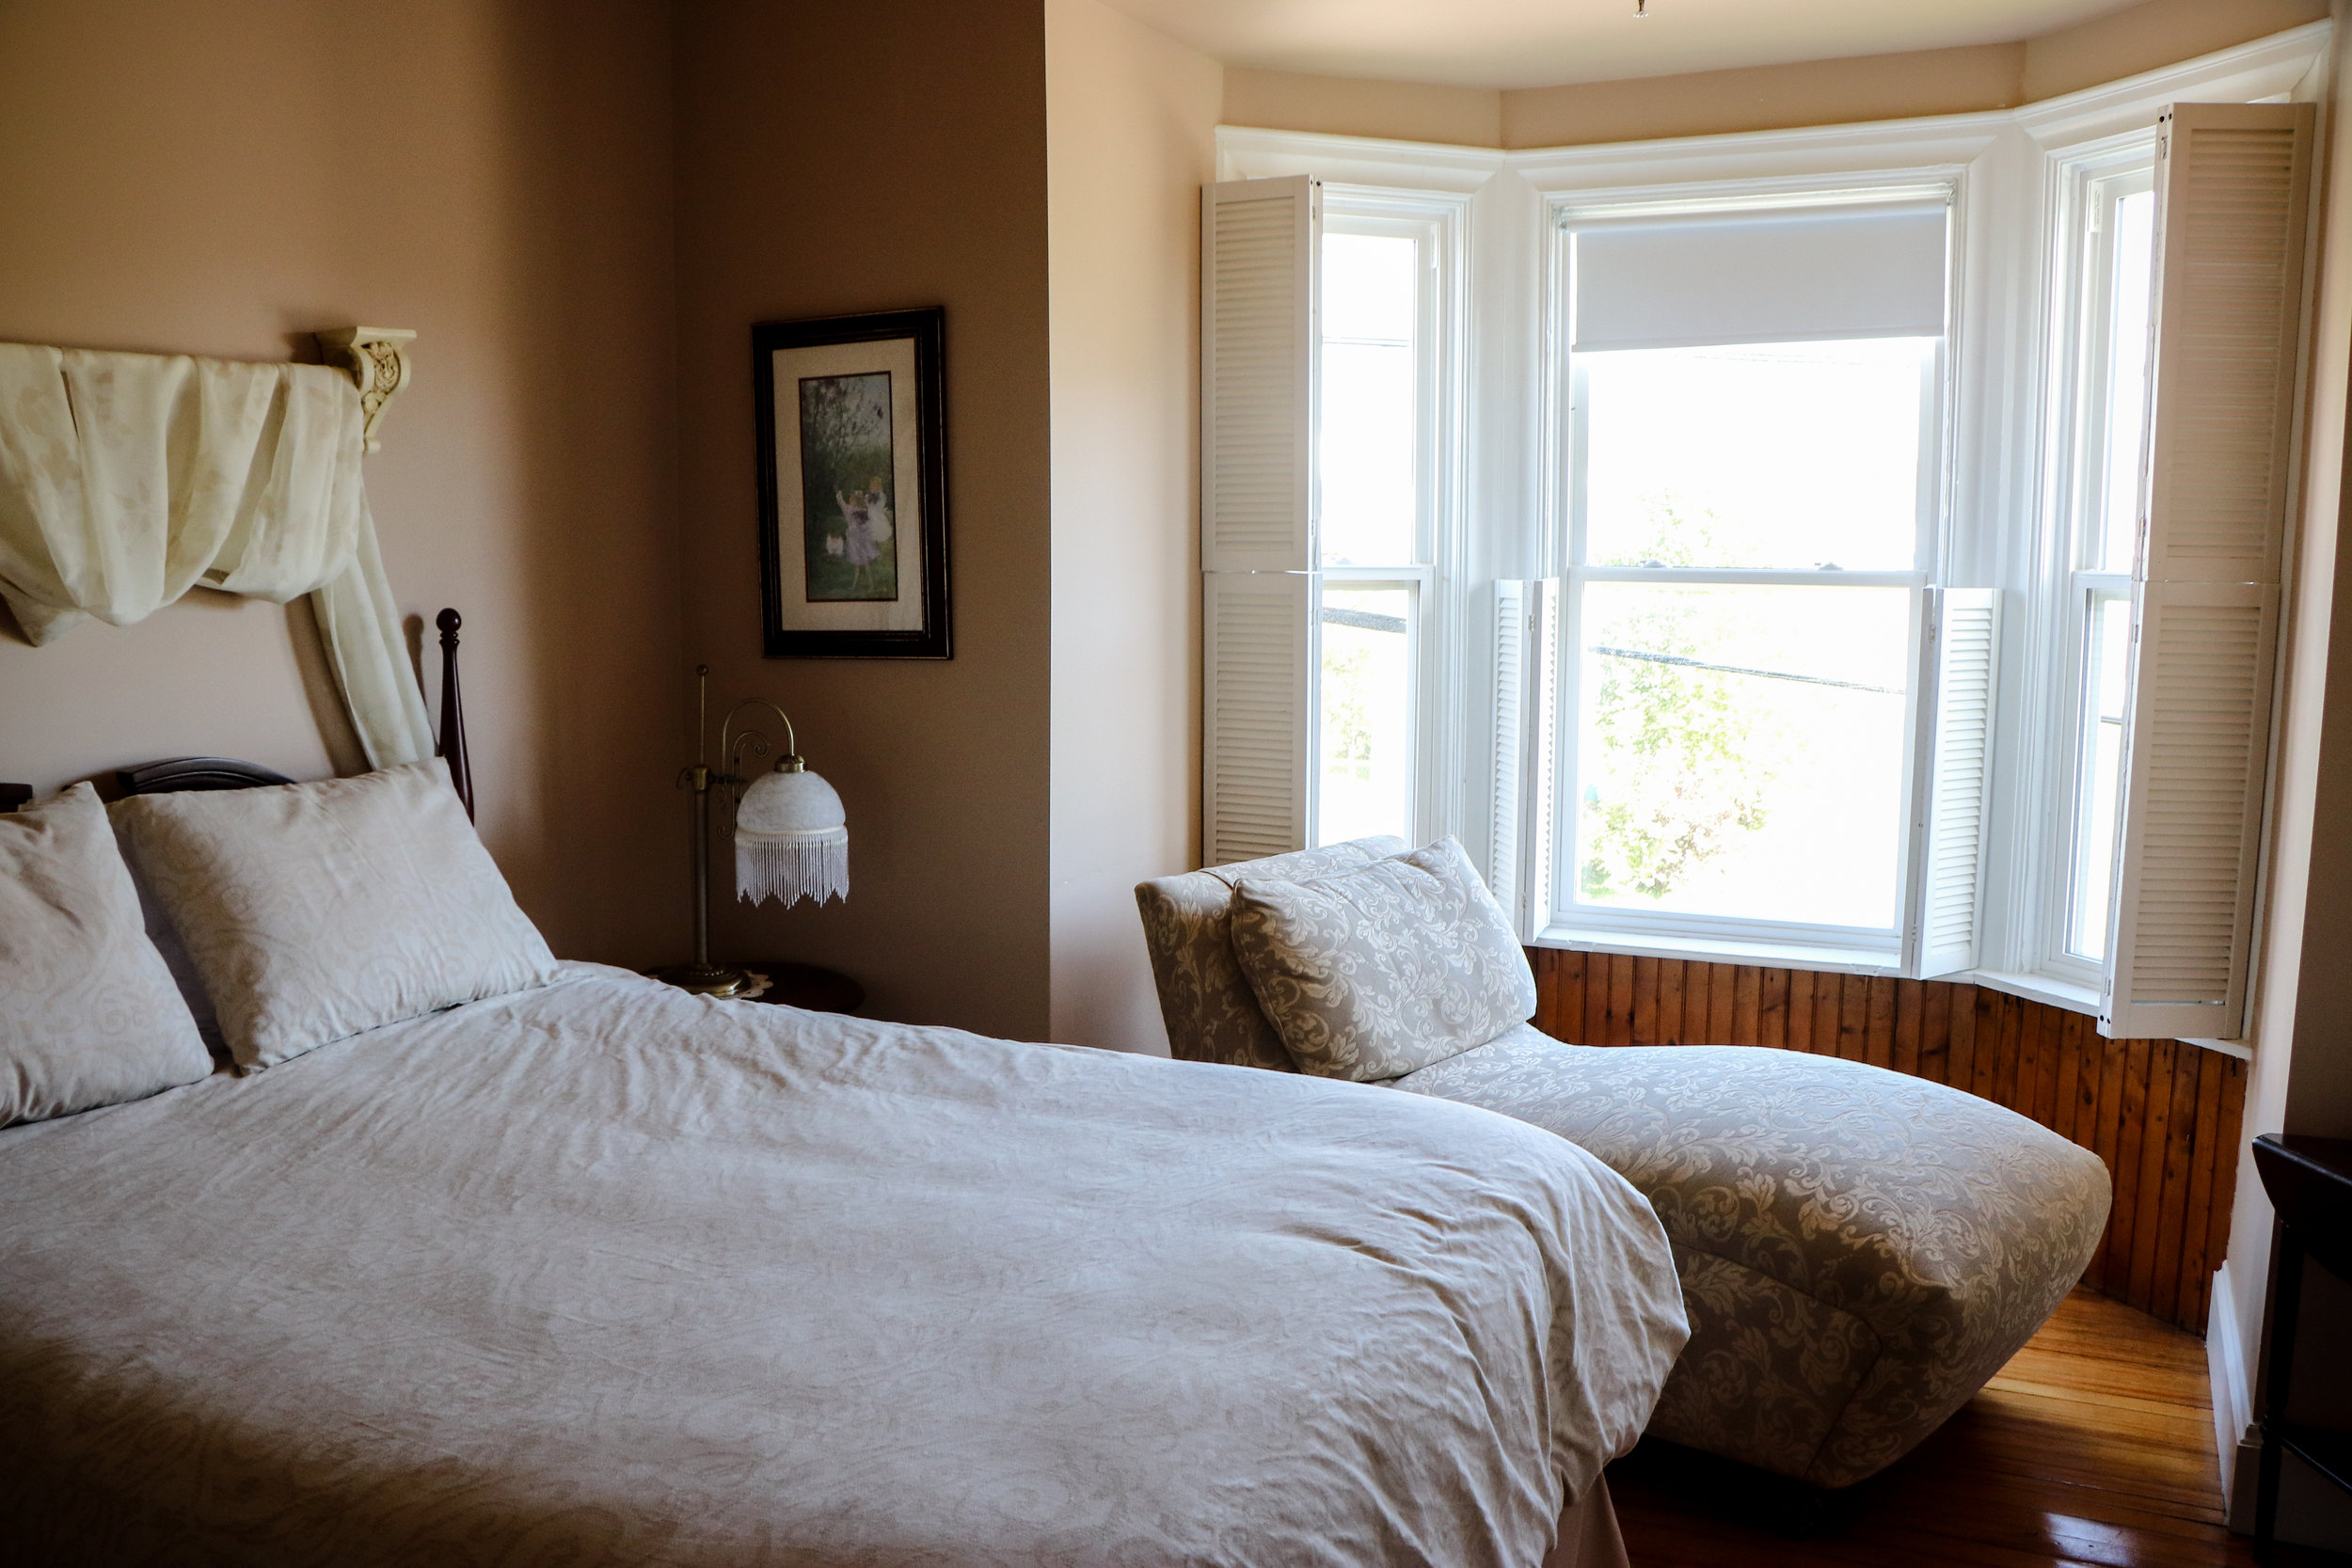 201 East Point Room - Price $172.50/Night